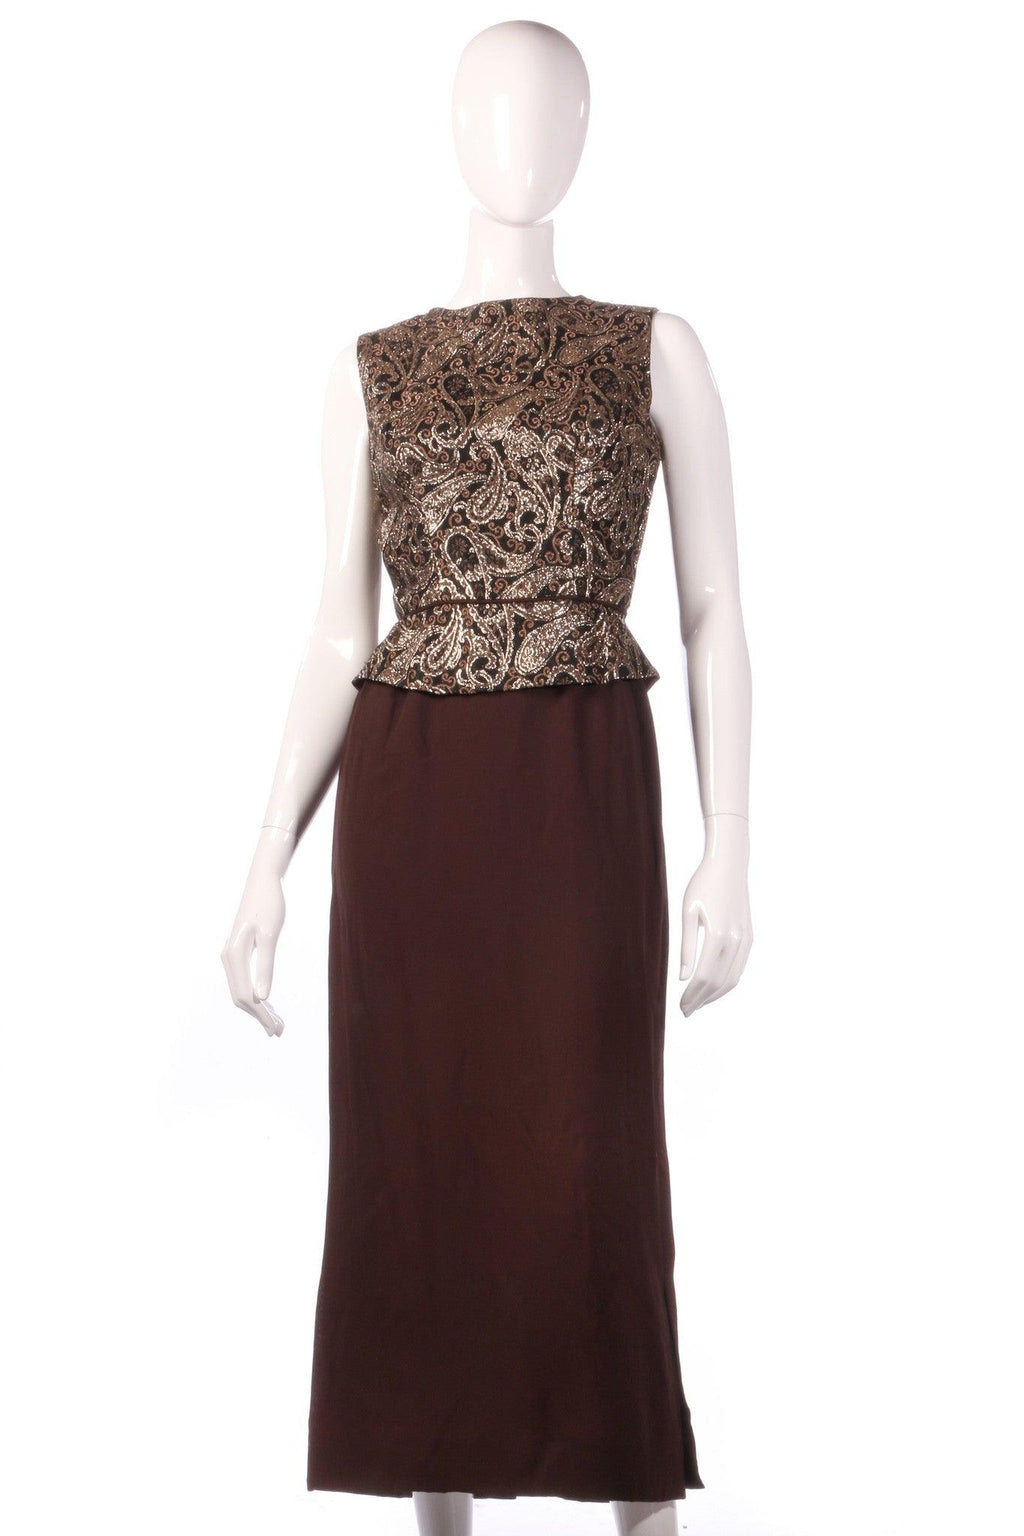 Brown dress with gold patterned peplum